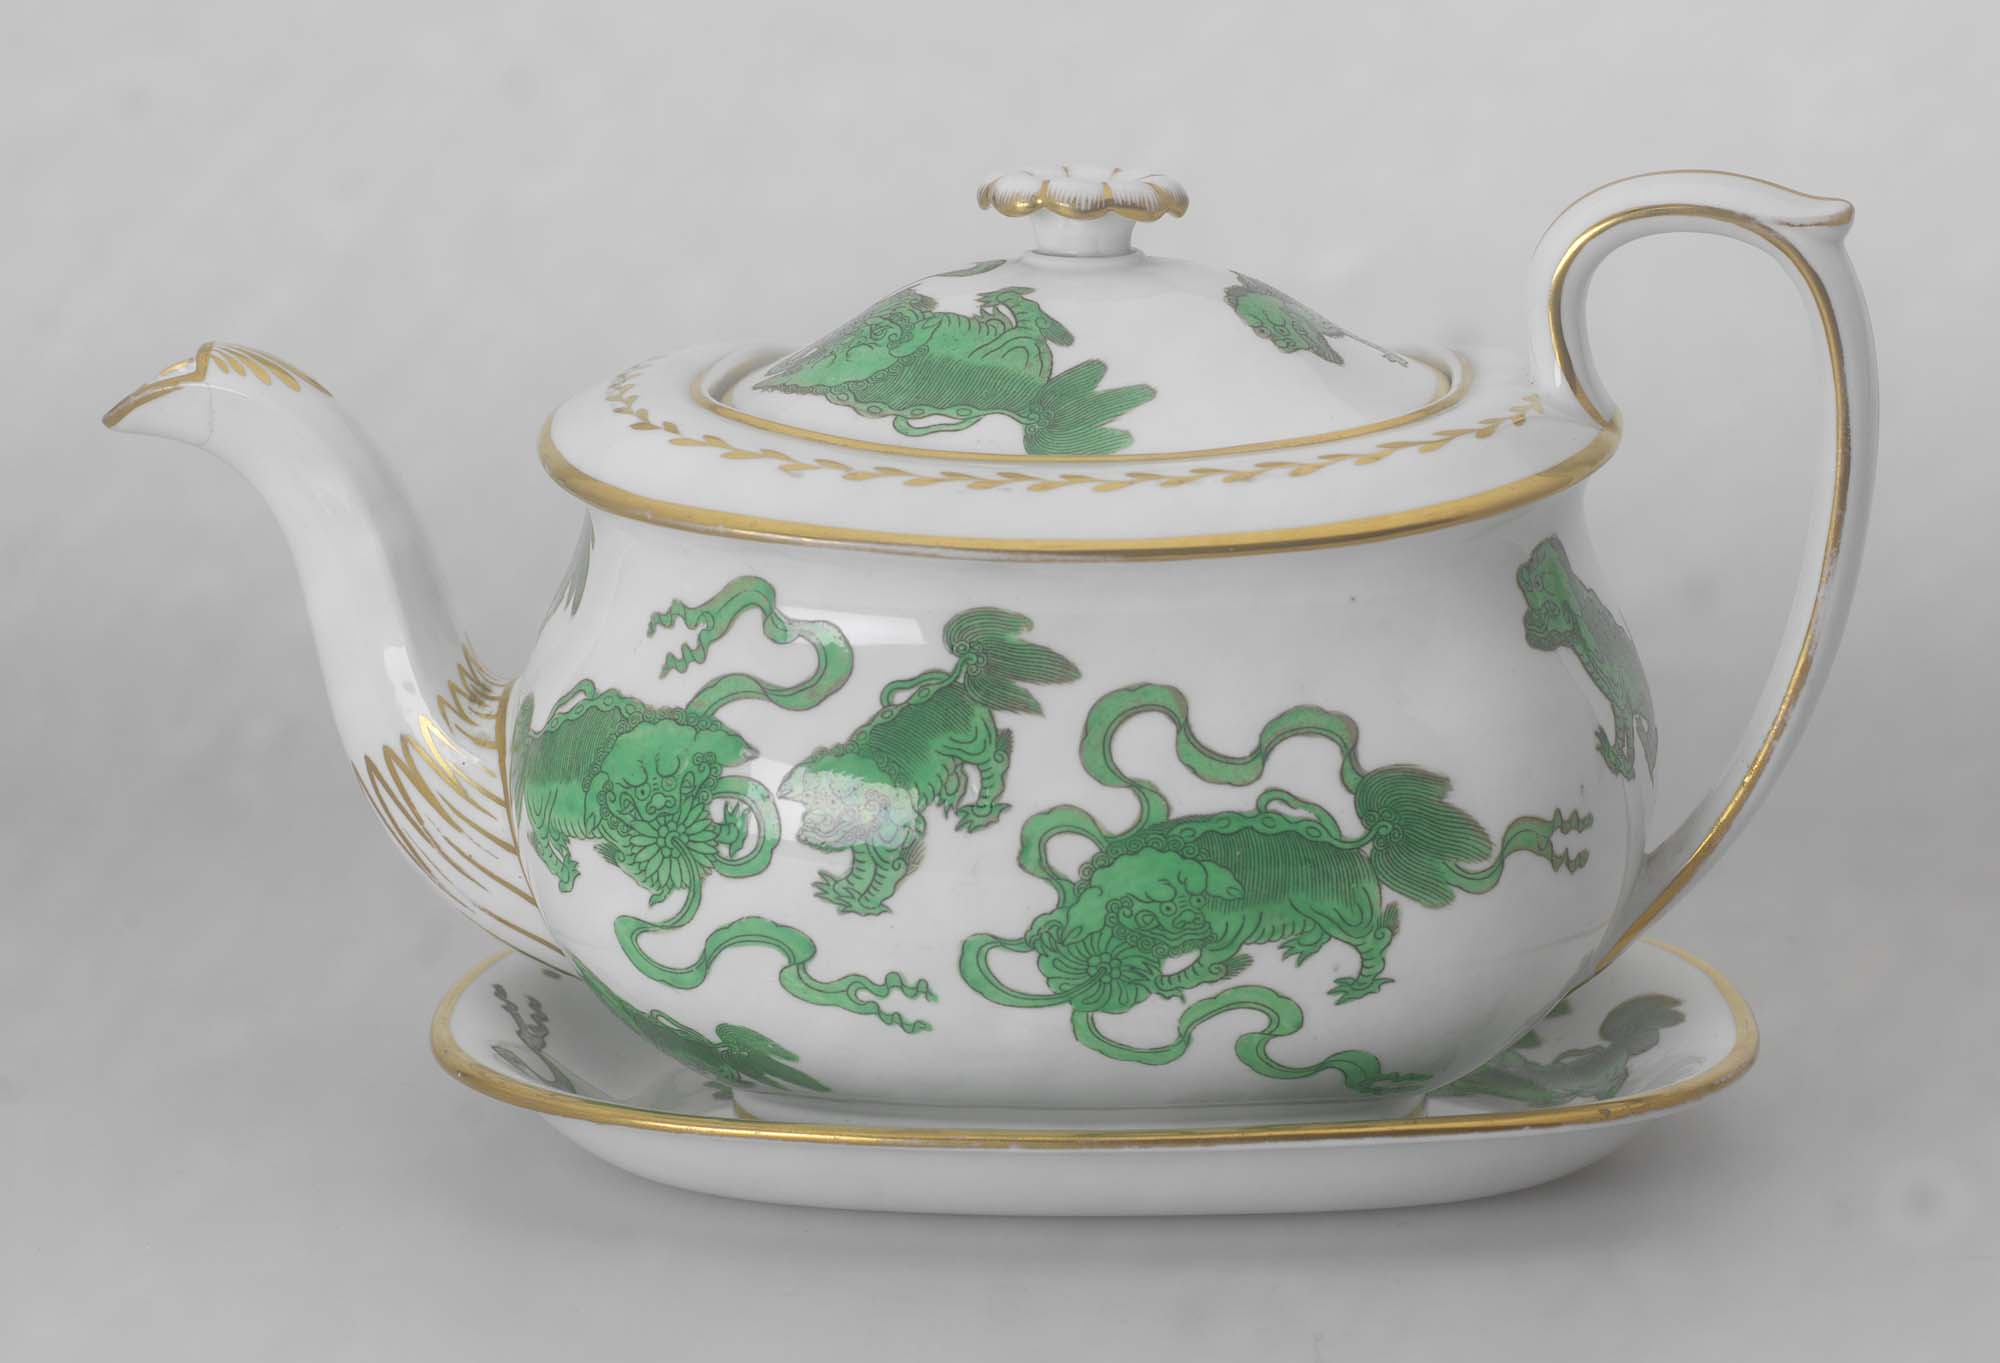 a photo of a porcelain teapot with green Chinese styled decoration